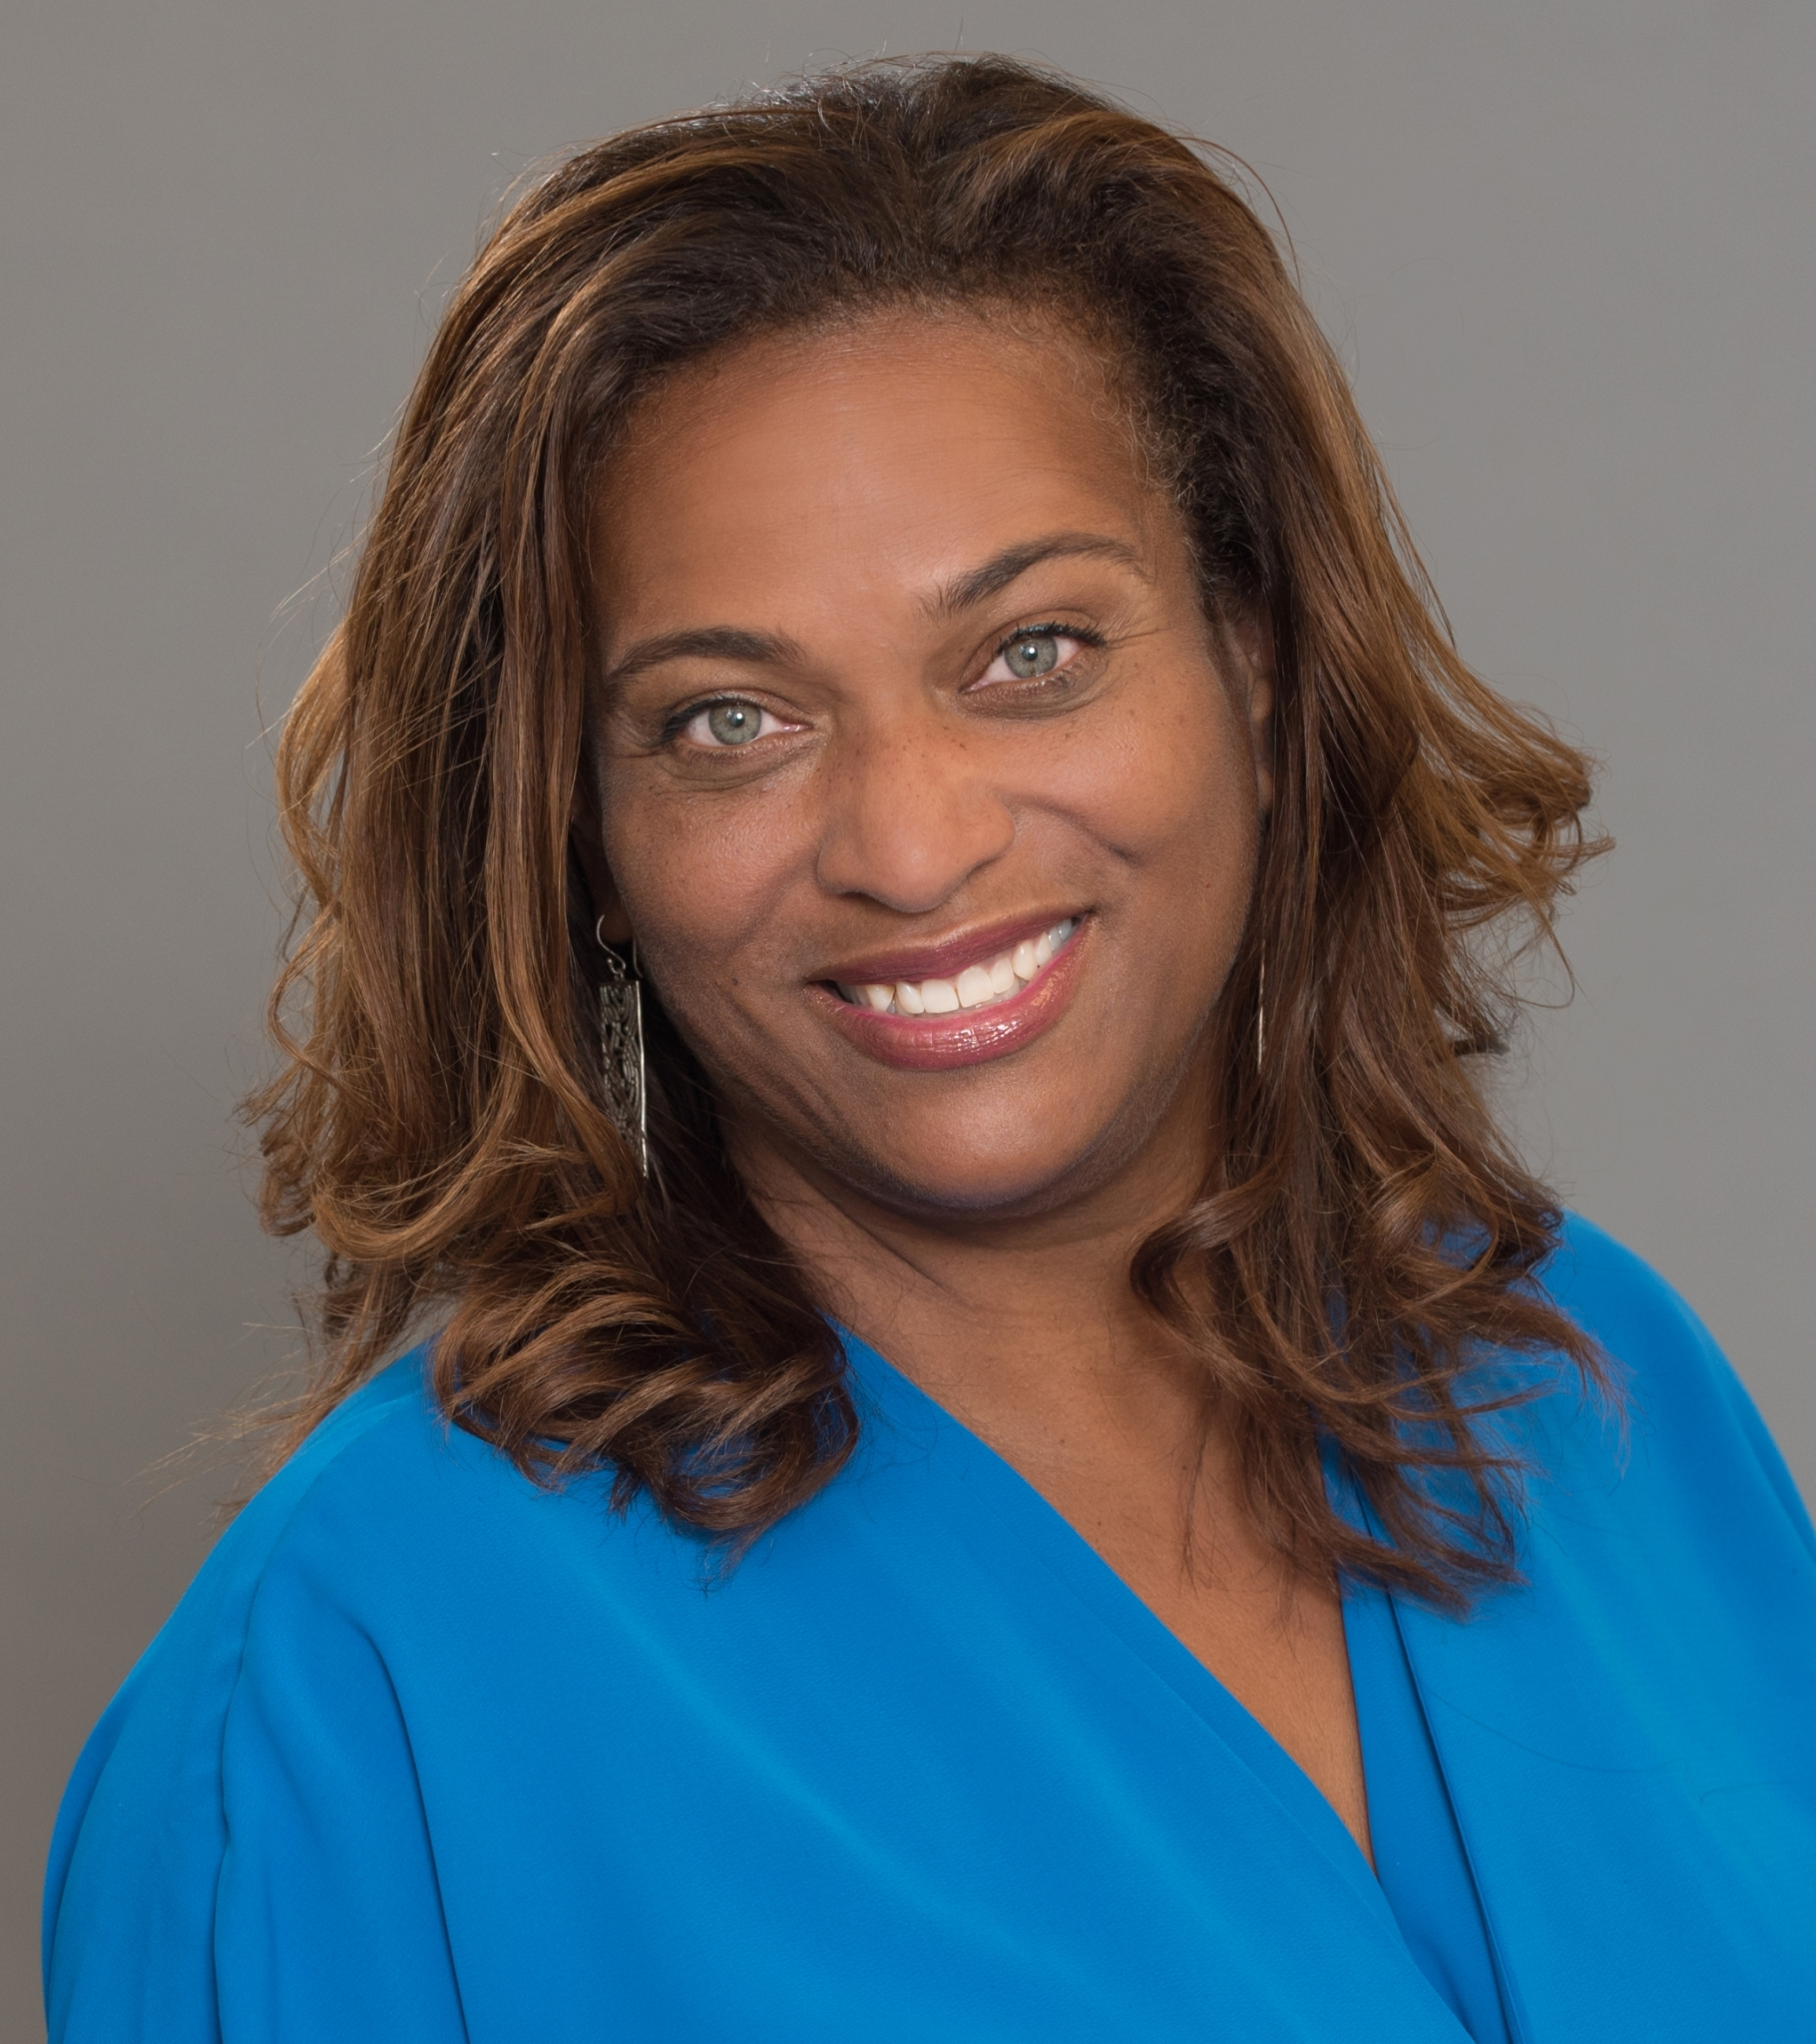 Headshot of Laura Blackman, Director of Real Estate and Cruise Projects